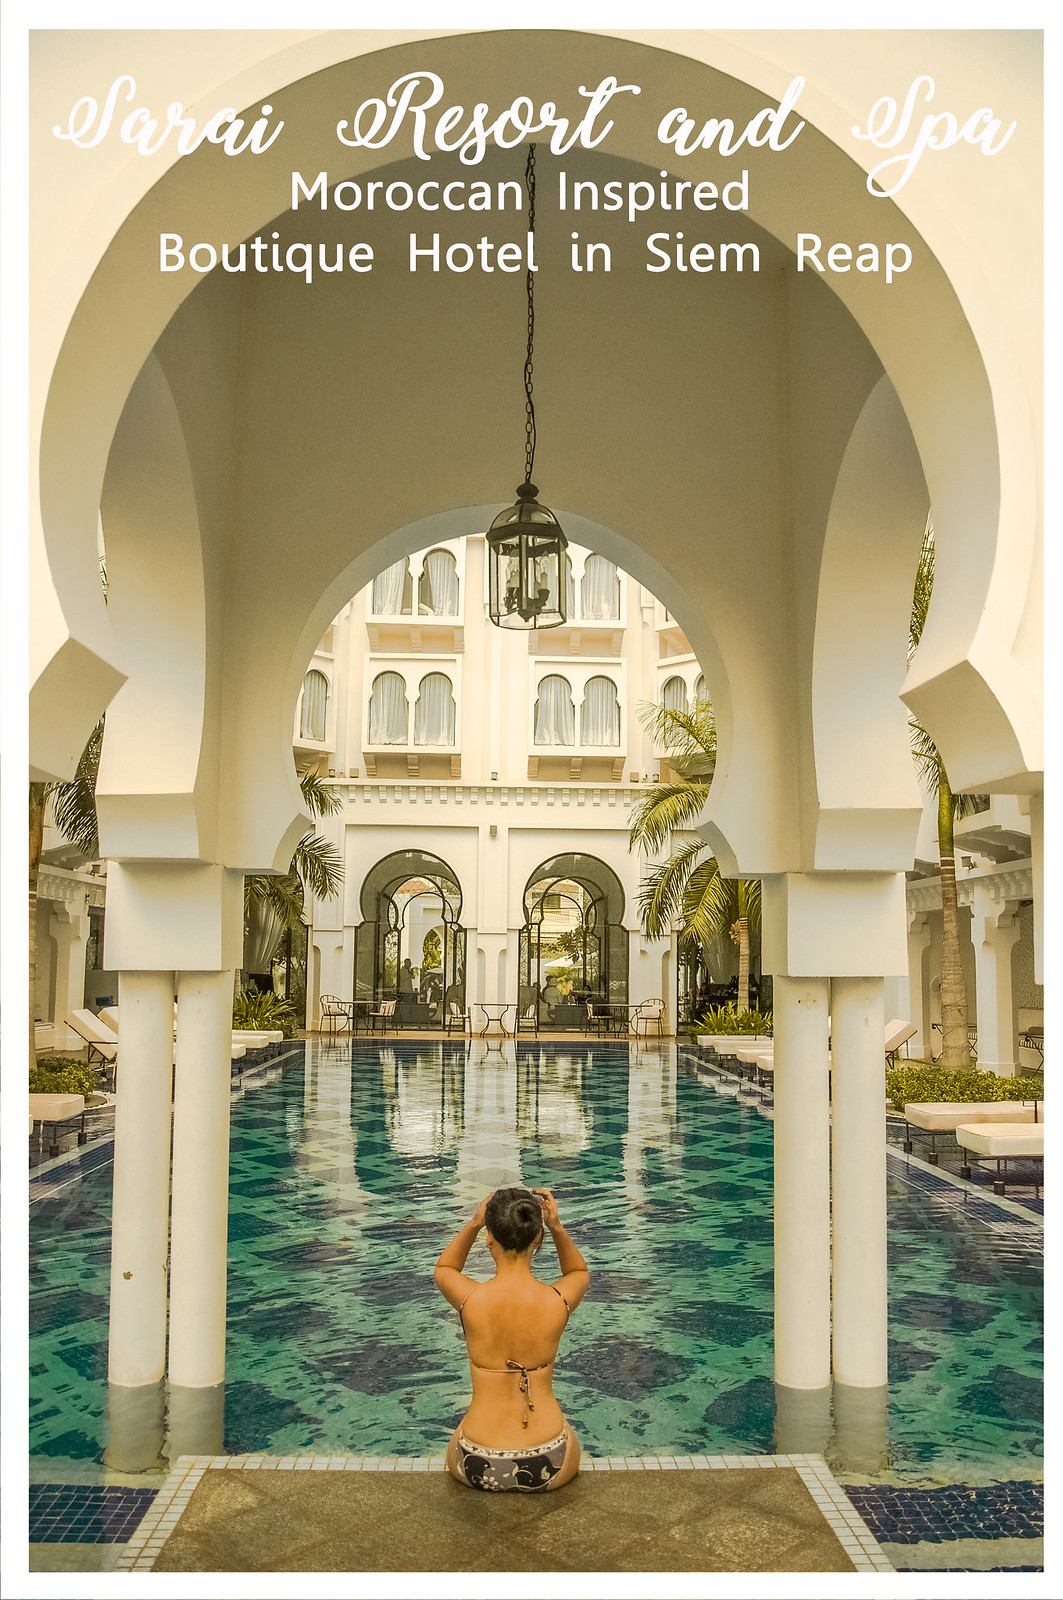 [Travel] Moroccan Inspired Boutique Hotel: Sarai Resort and Spa at Siem Reap, Cambodia